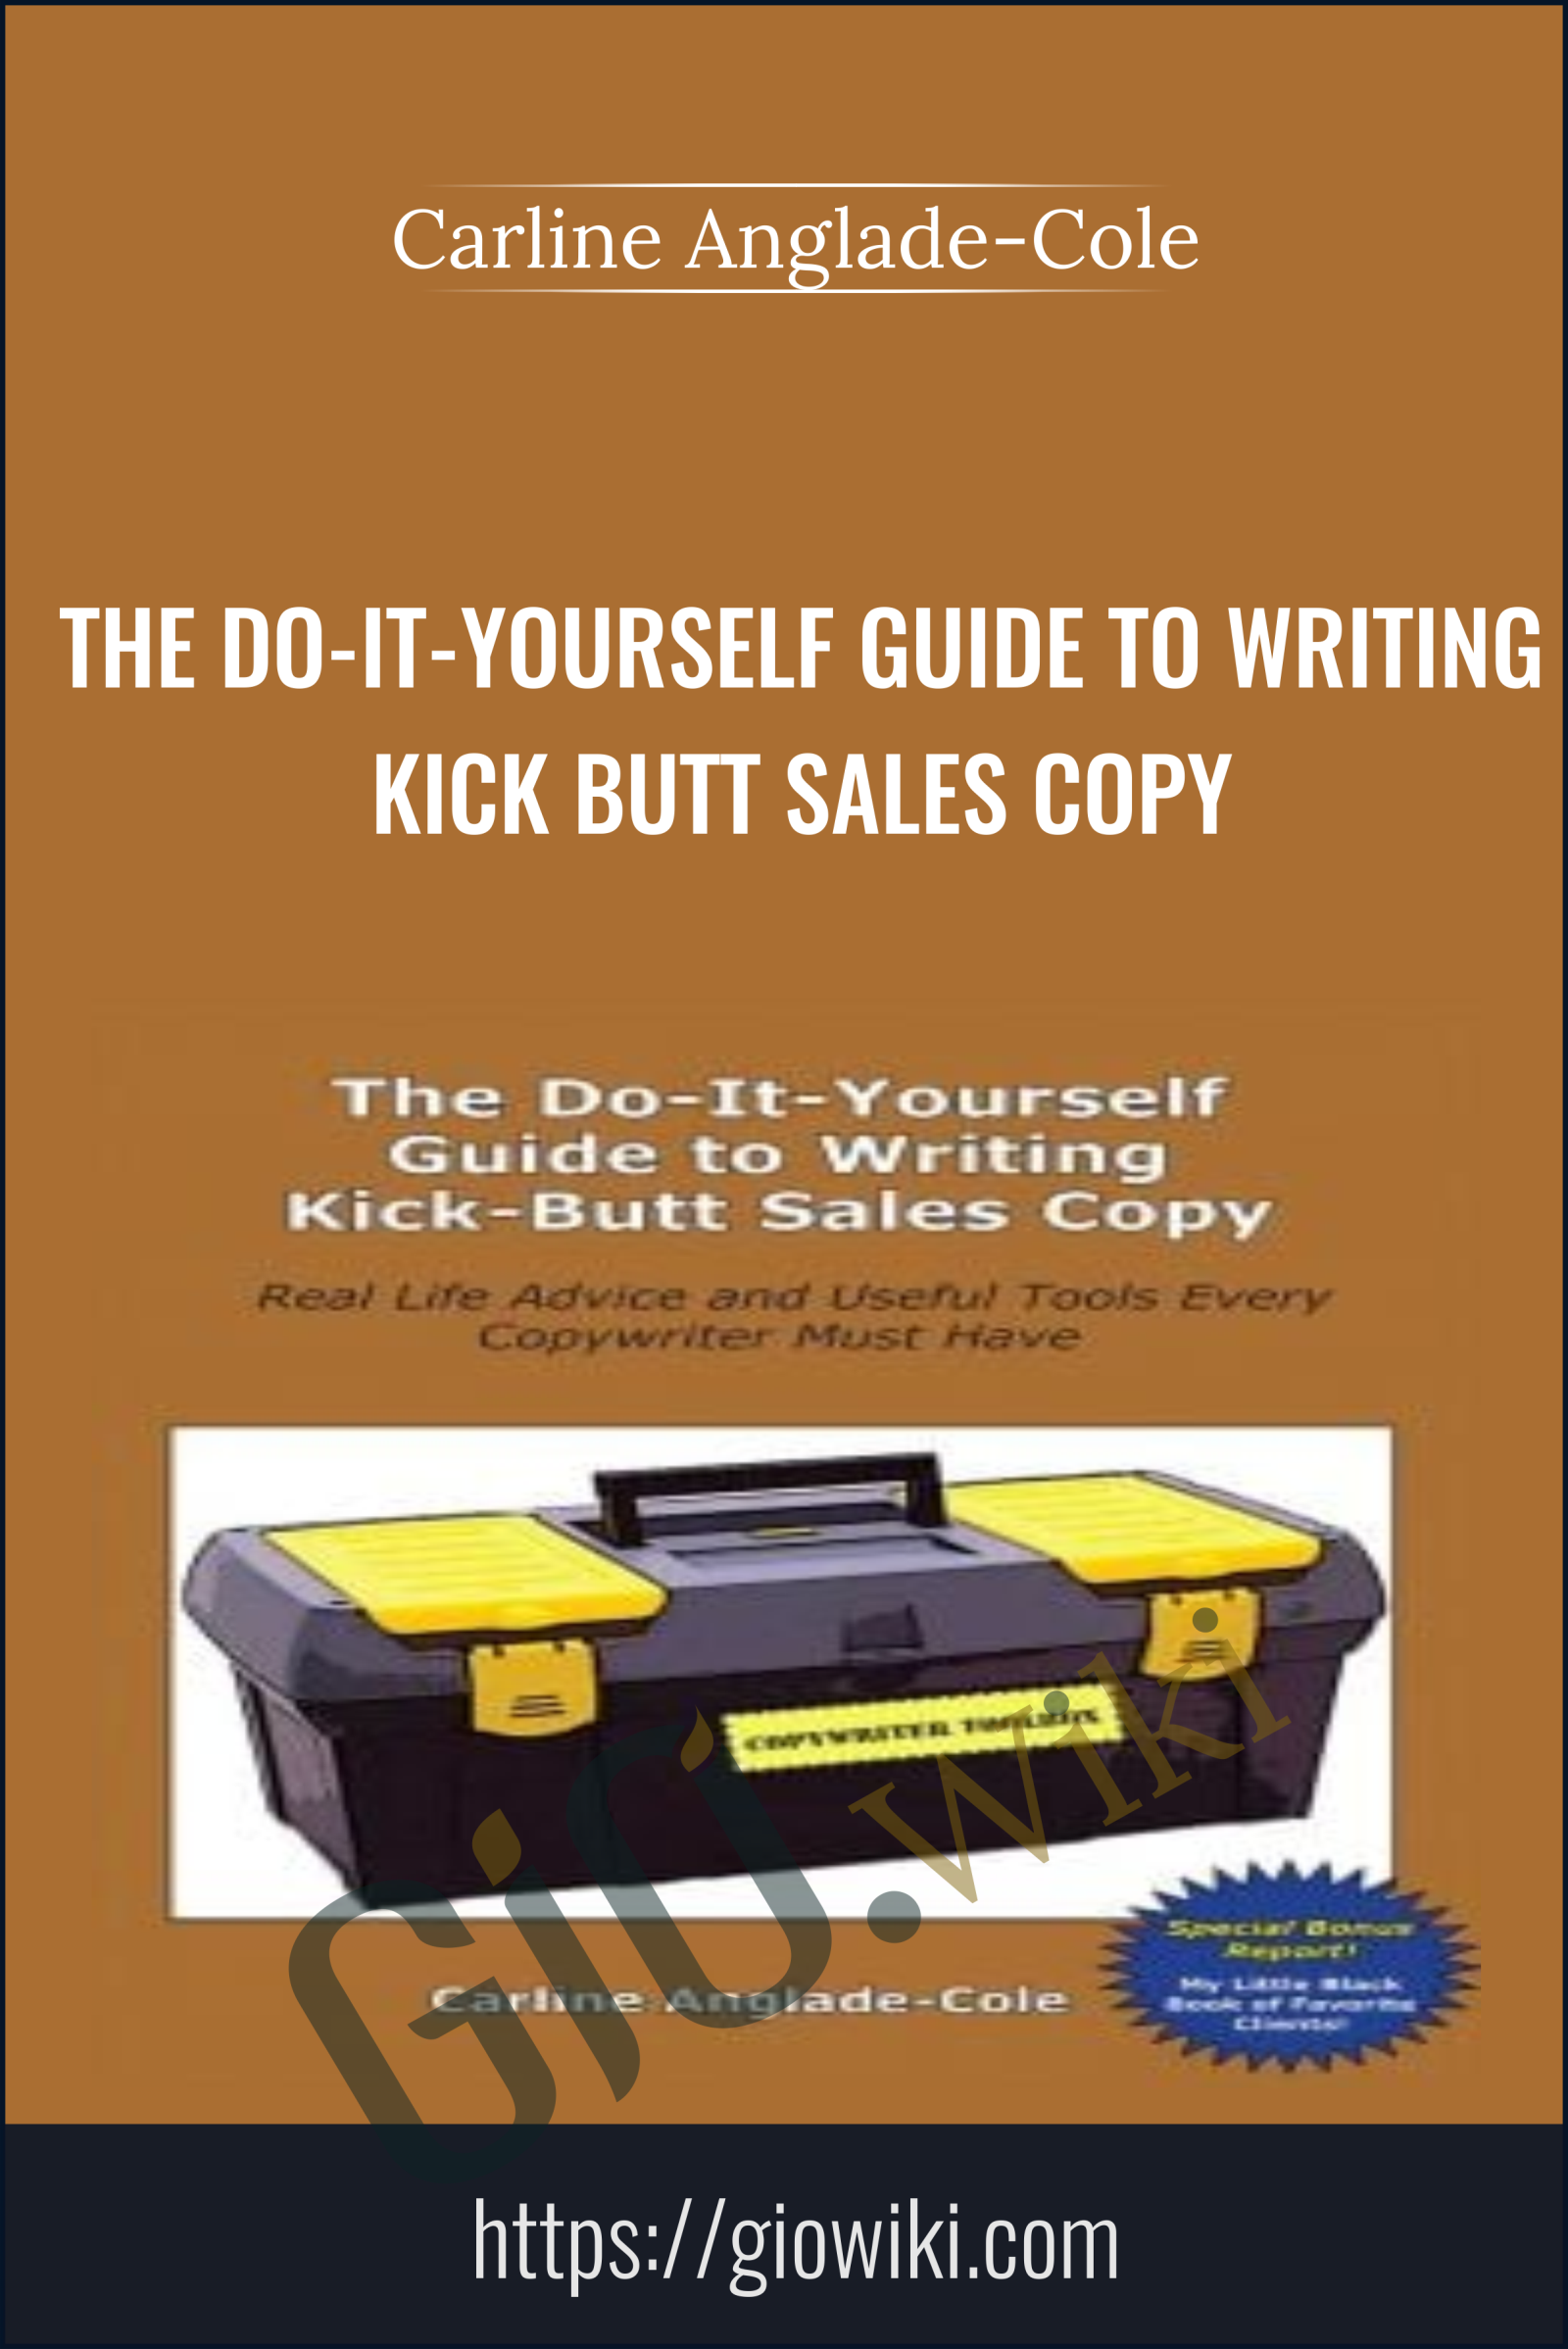 The Do-It-Yourself Guide to Writing Kick-Butt Sales Copy - Carline Anglade-Cole